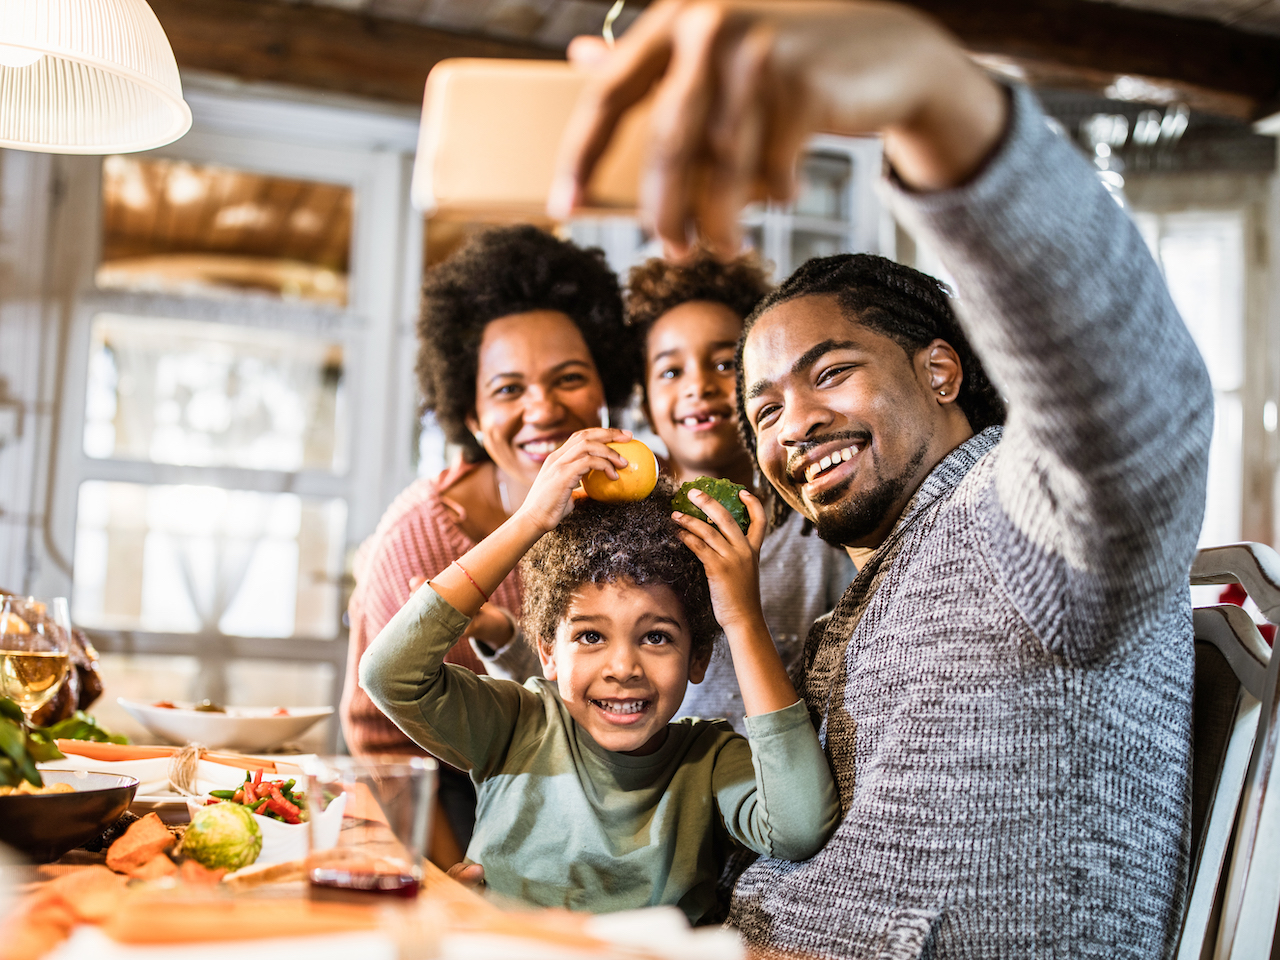 A Black family with two children taking a selfie in their kitchen